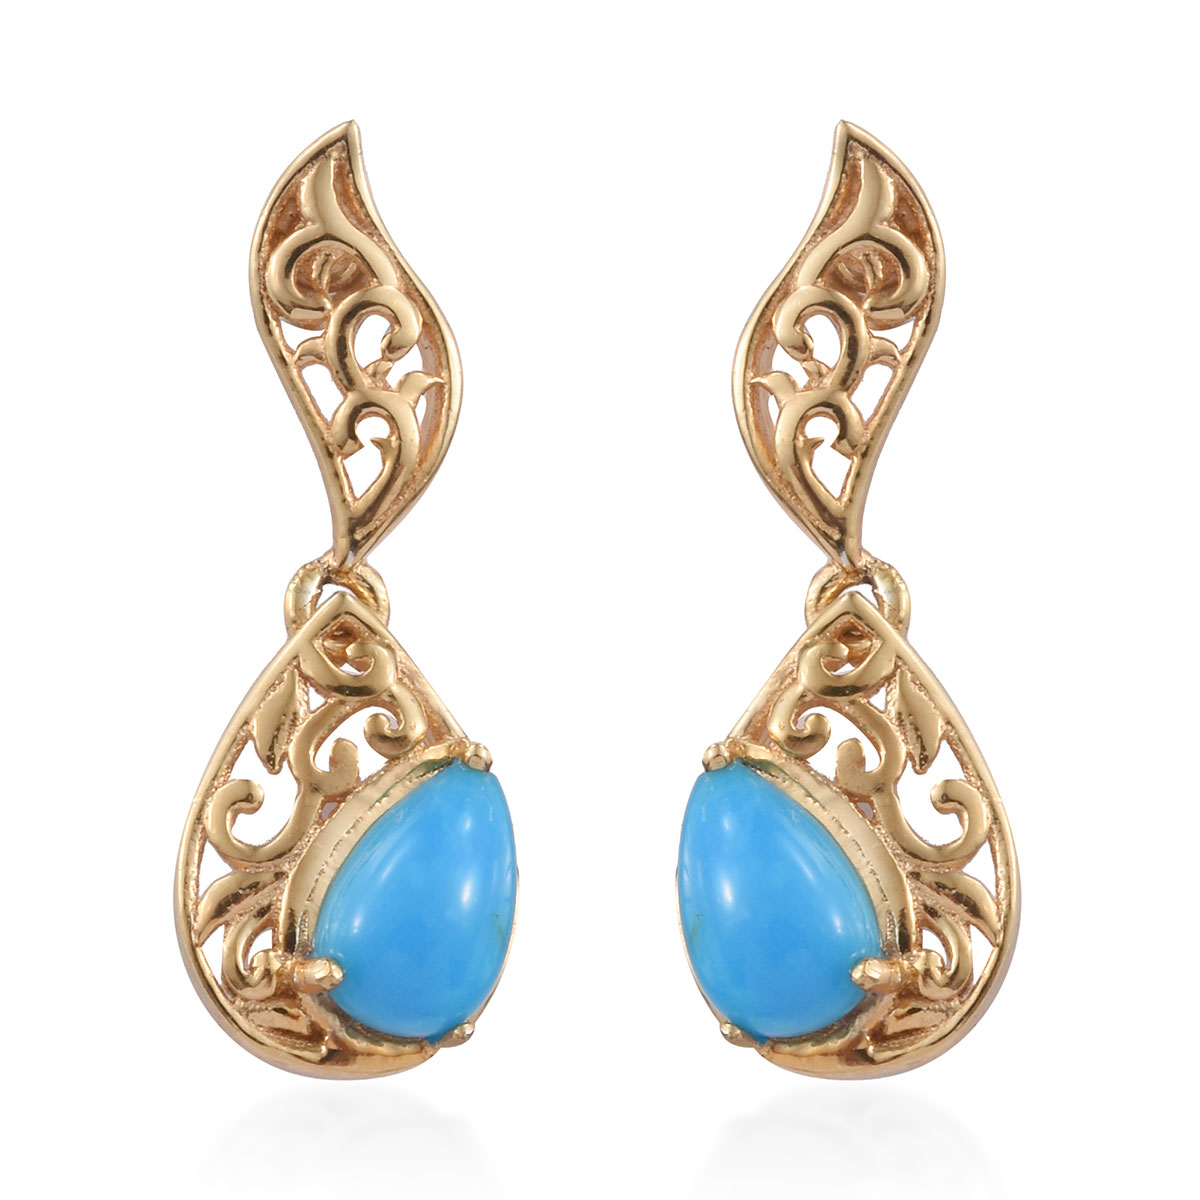 52bb404ab Arizona Sleeping Beauty Turquoise Vermeil YG Over Sterling Silver Dangle  Earrings TGW 1.44 cts.